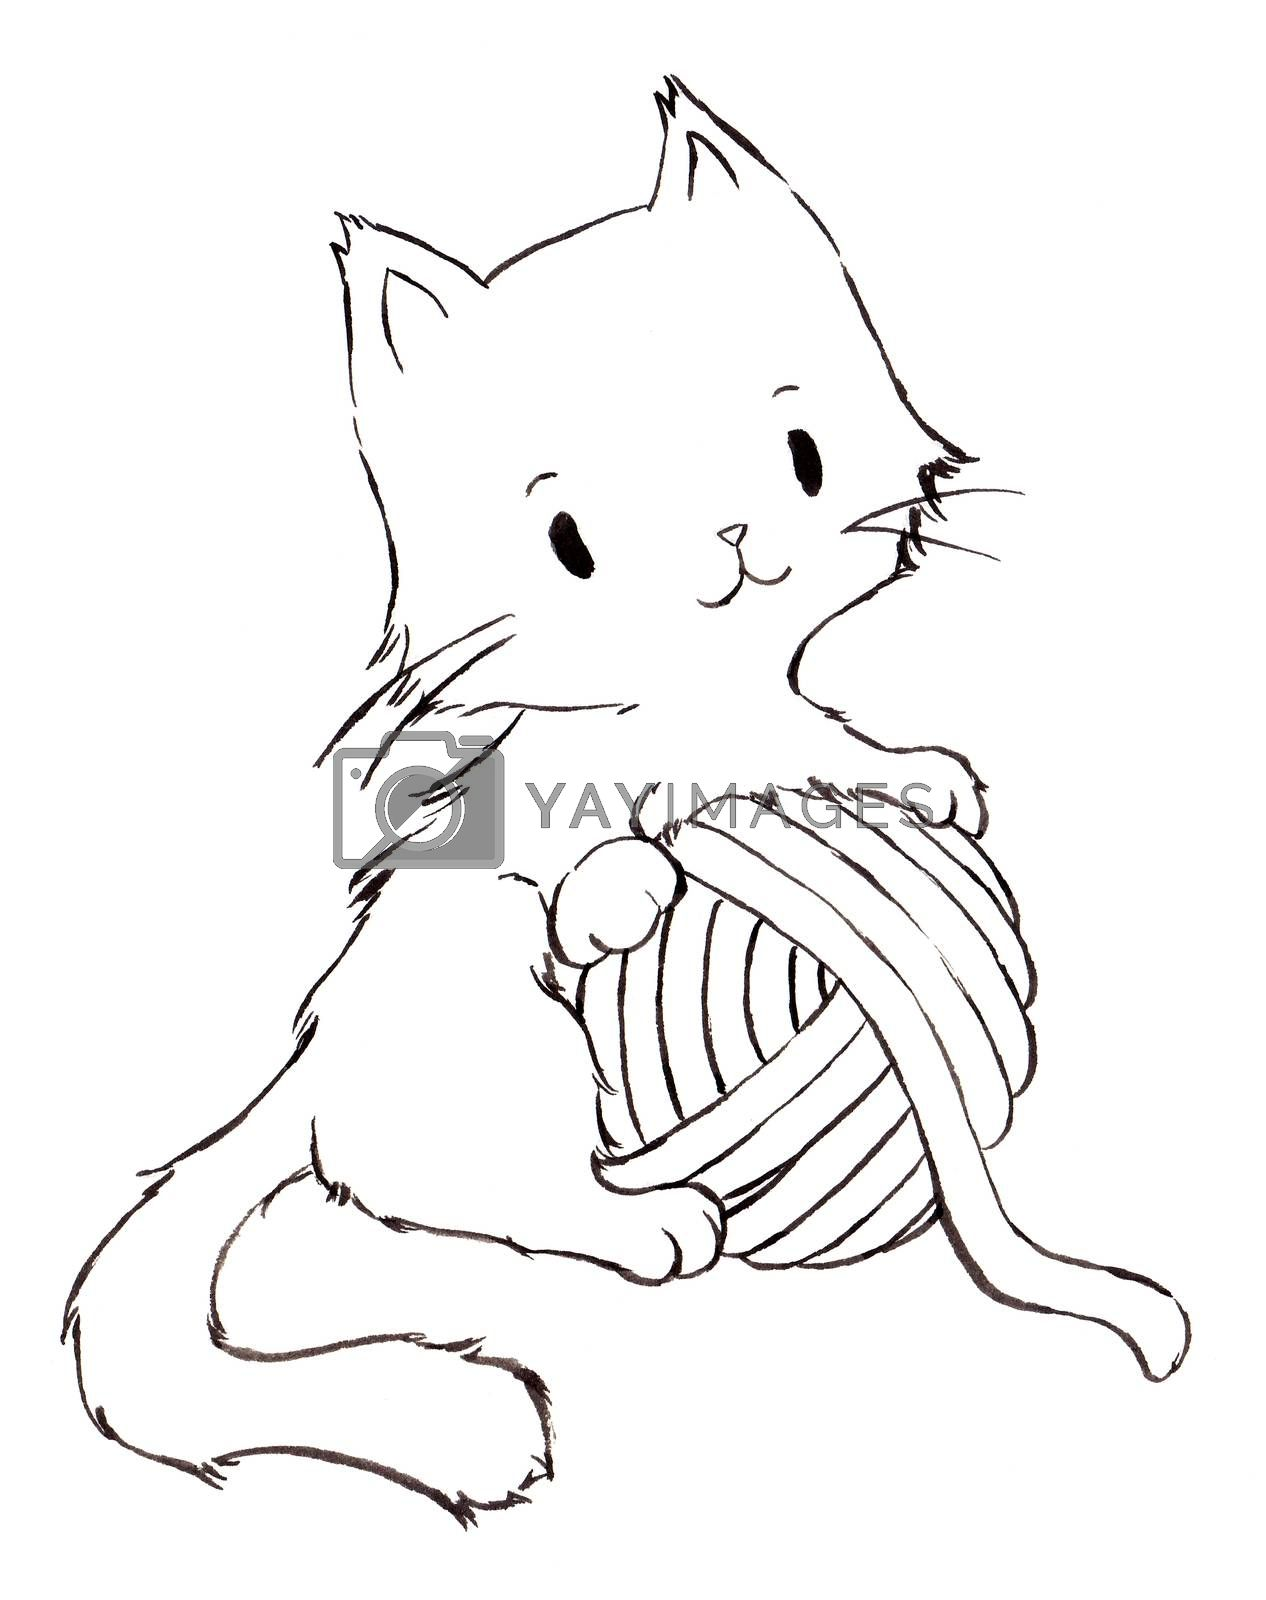 Fluffy kittens hugging yarn ball. Line art cartoon character black ink hand painting for decoration in pet artwork advertising, coloring book, textbook for small children. by Ungamrung